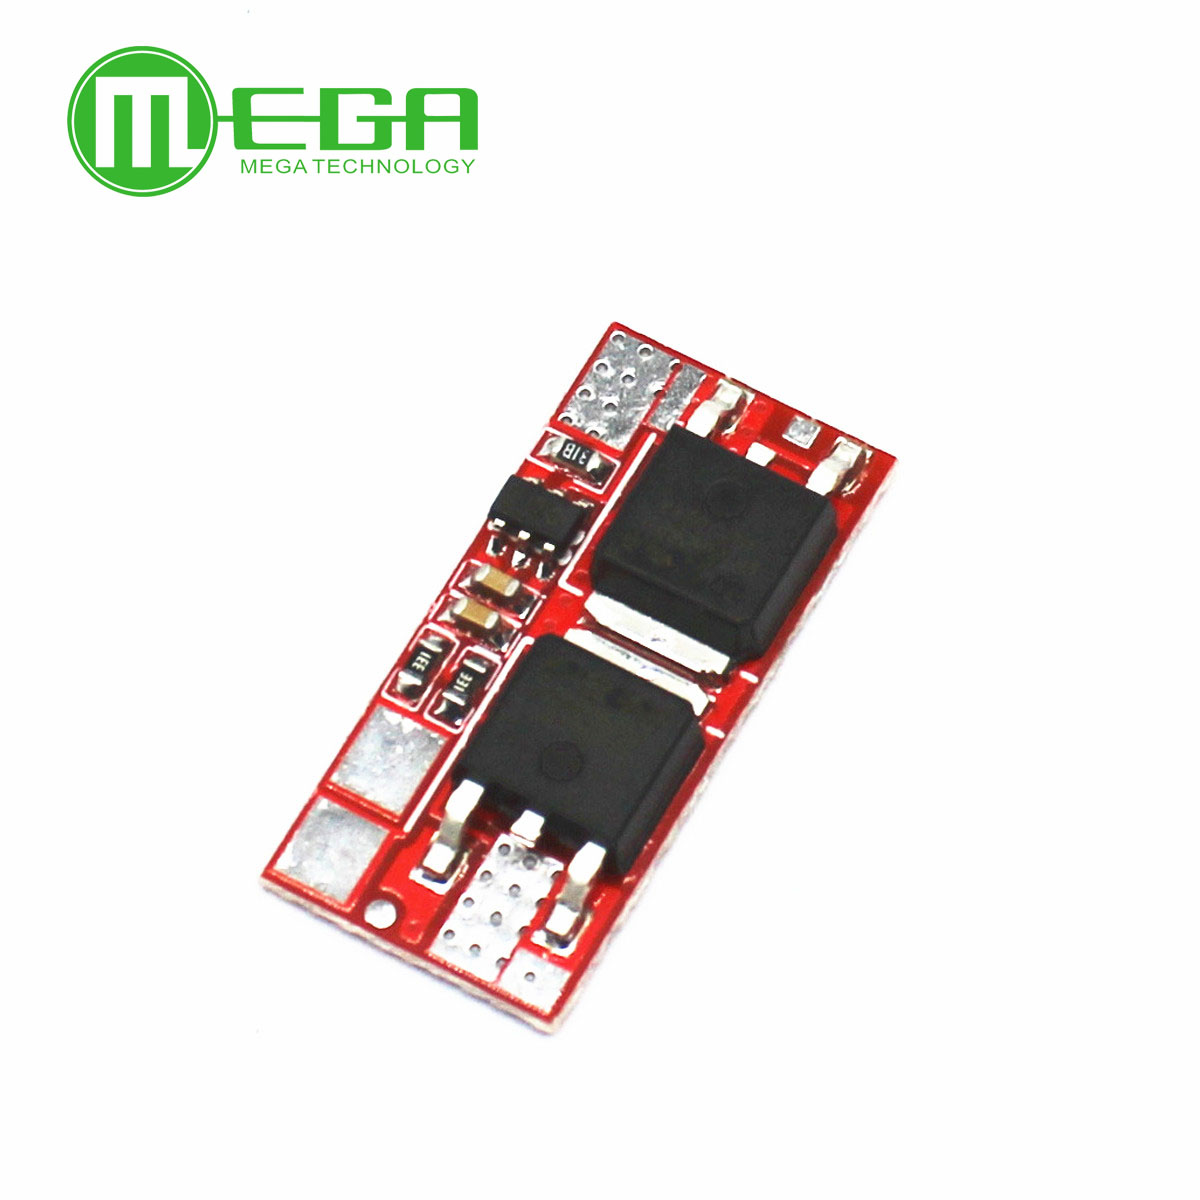 10A <font><b>1S</b></font> 2S 4.2V PCB PCM Charger Charging Module 18650 Li-ion Lipo BMS Lithium <font><b>Battery</b></font> <font><b>Protection</b></font> Circuit <font><b>Board</b></font> 1 2 Cell Serials image